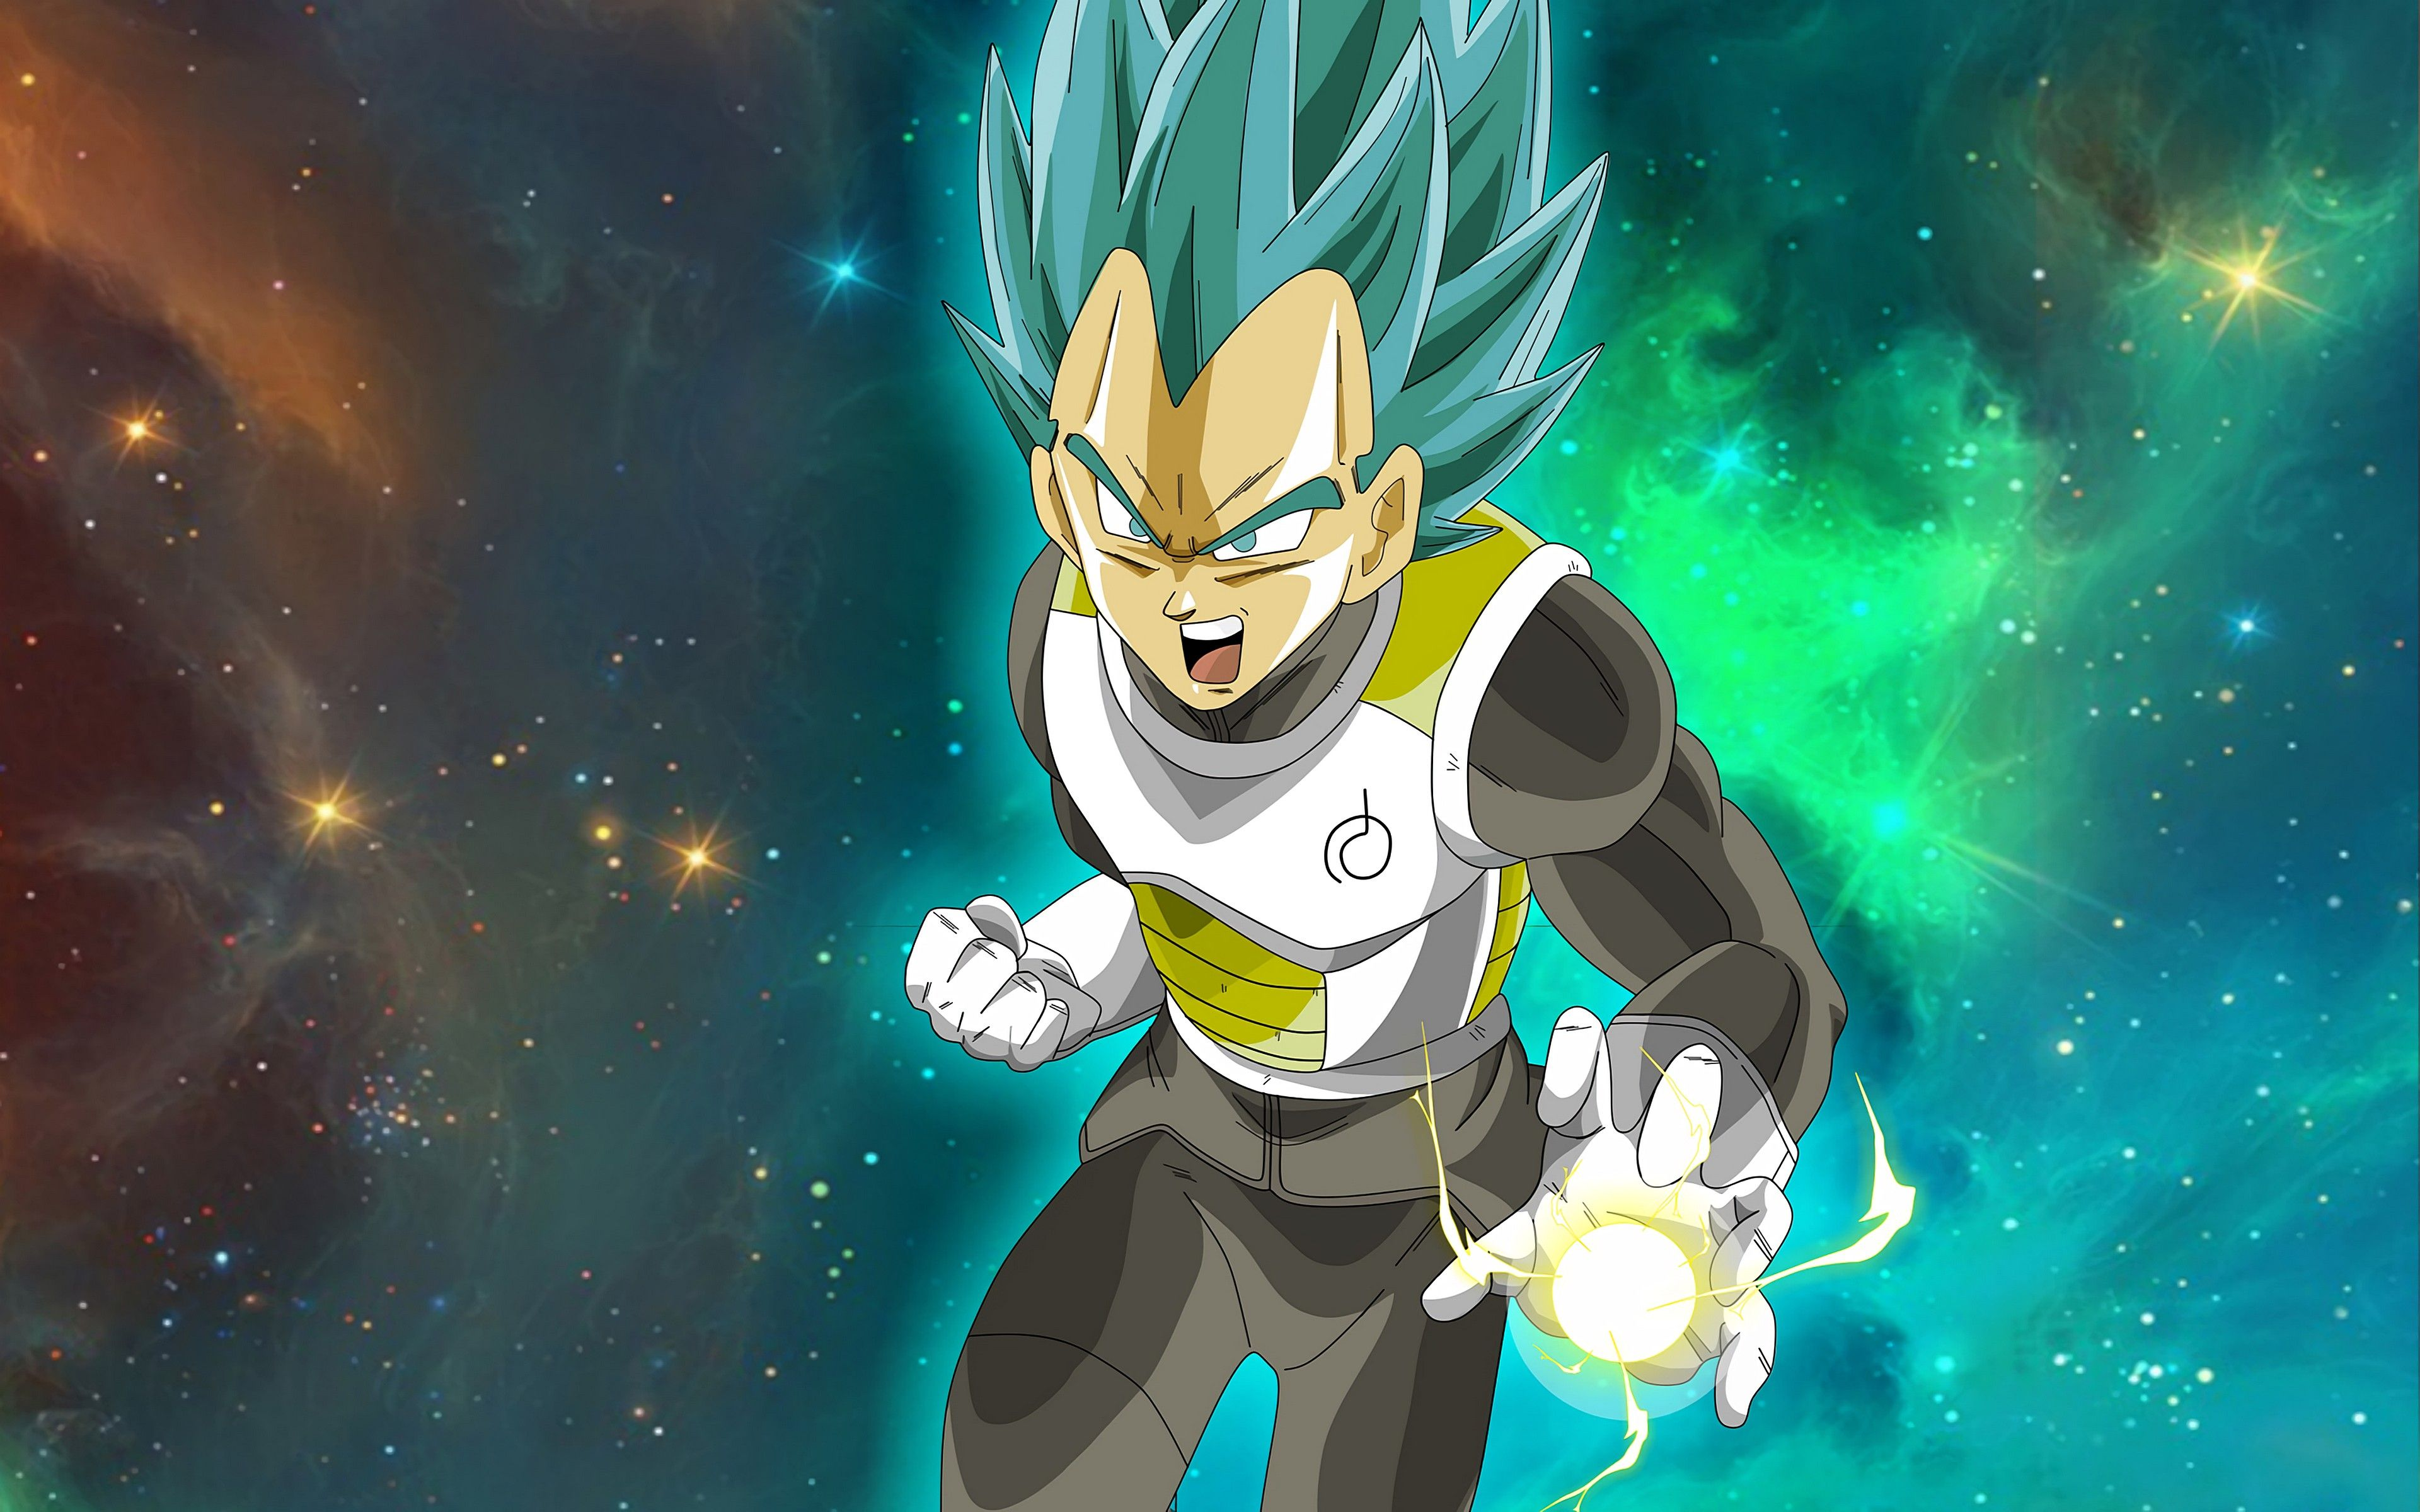 Dragon Ball Super Vegeta Wallpaper Mobile Sdeerwallpaper